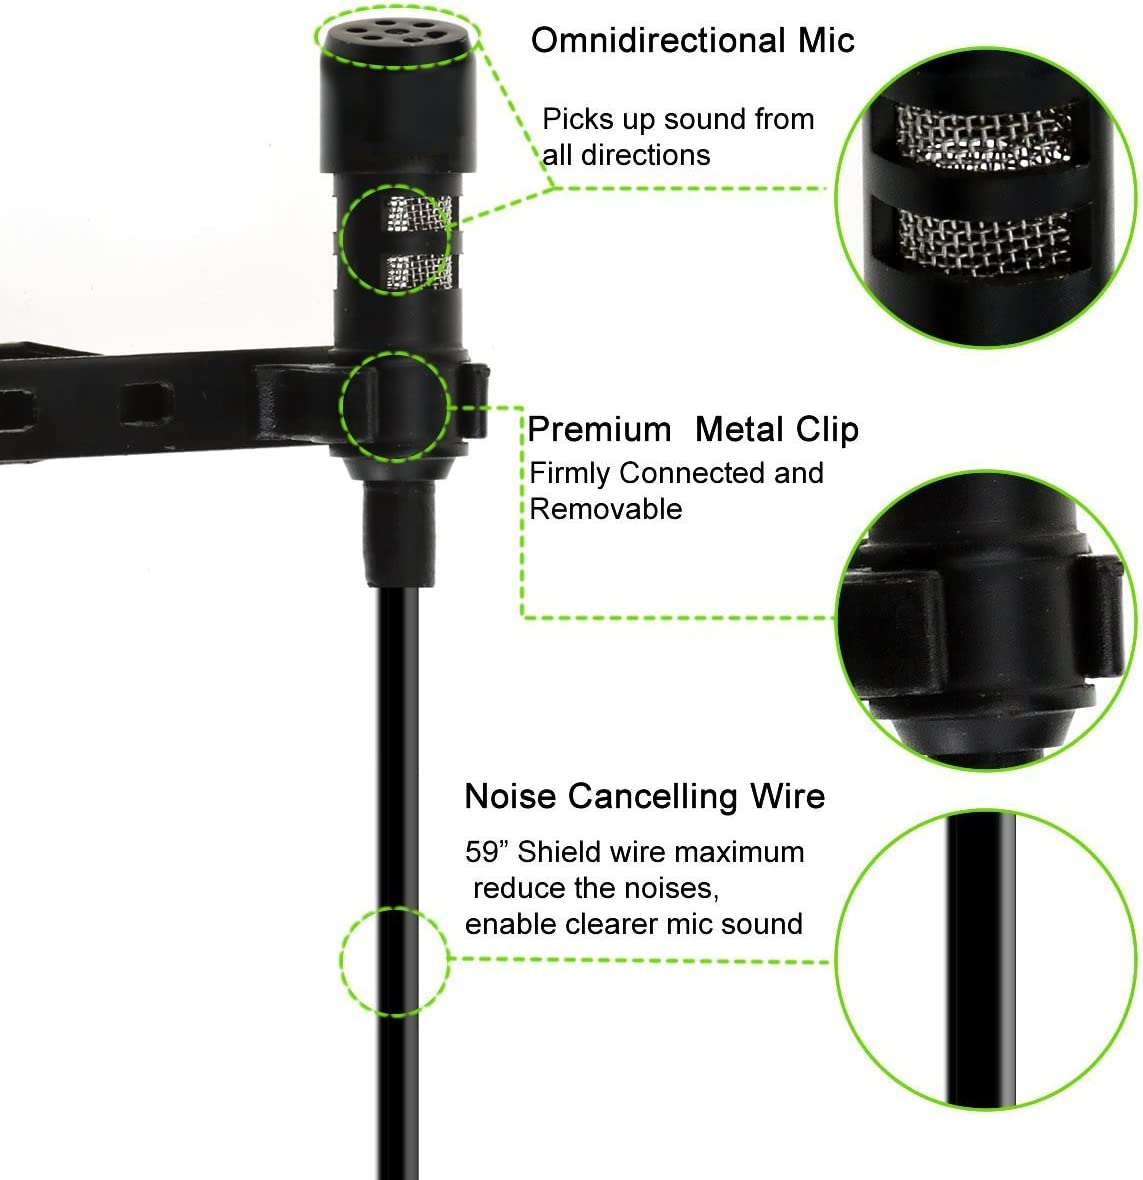 ForPeak Lavalier Lapel Microphone 3.5mm Omnidirectional Mic with Easy Clip for iPhone Android Recording//YouTube//Interview//Podcast//Studio//Video Conference